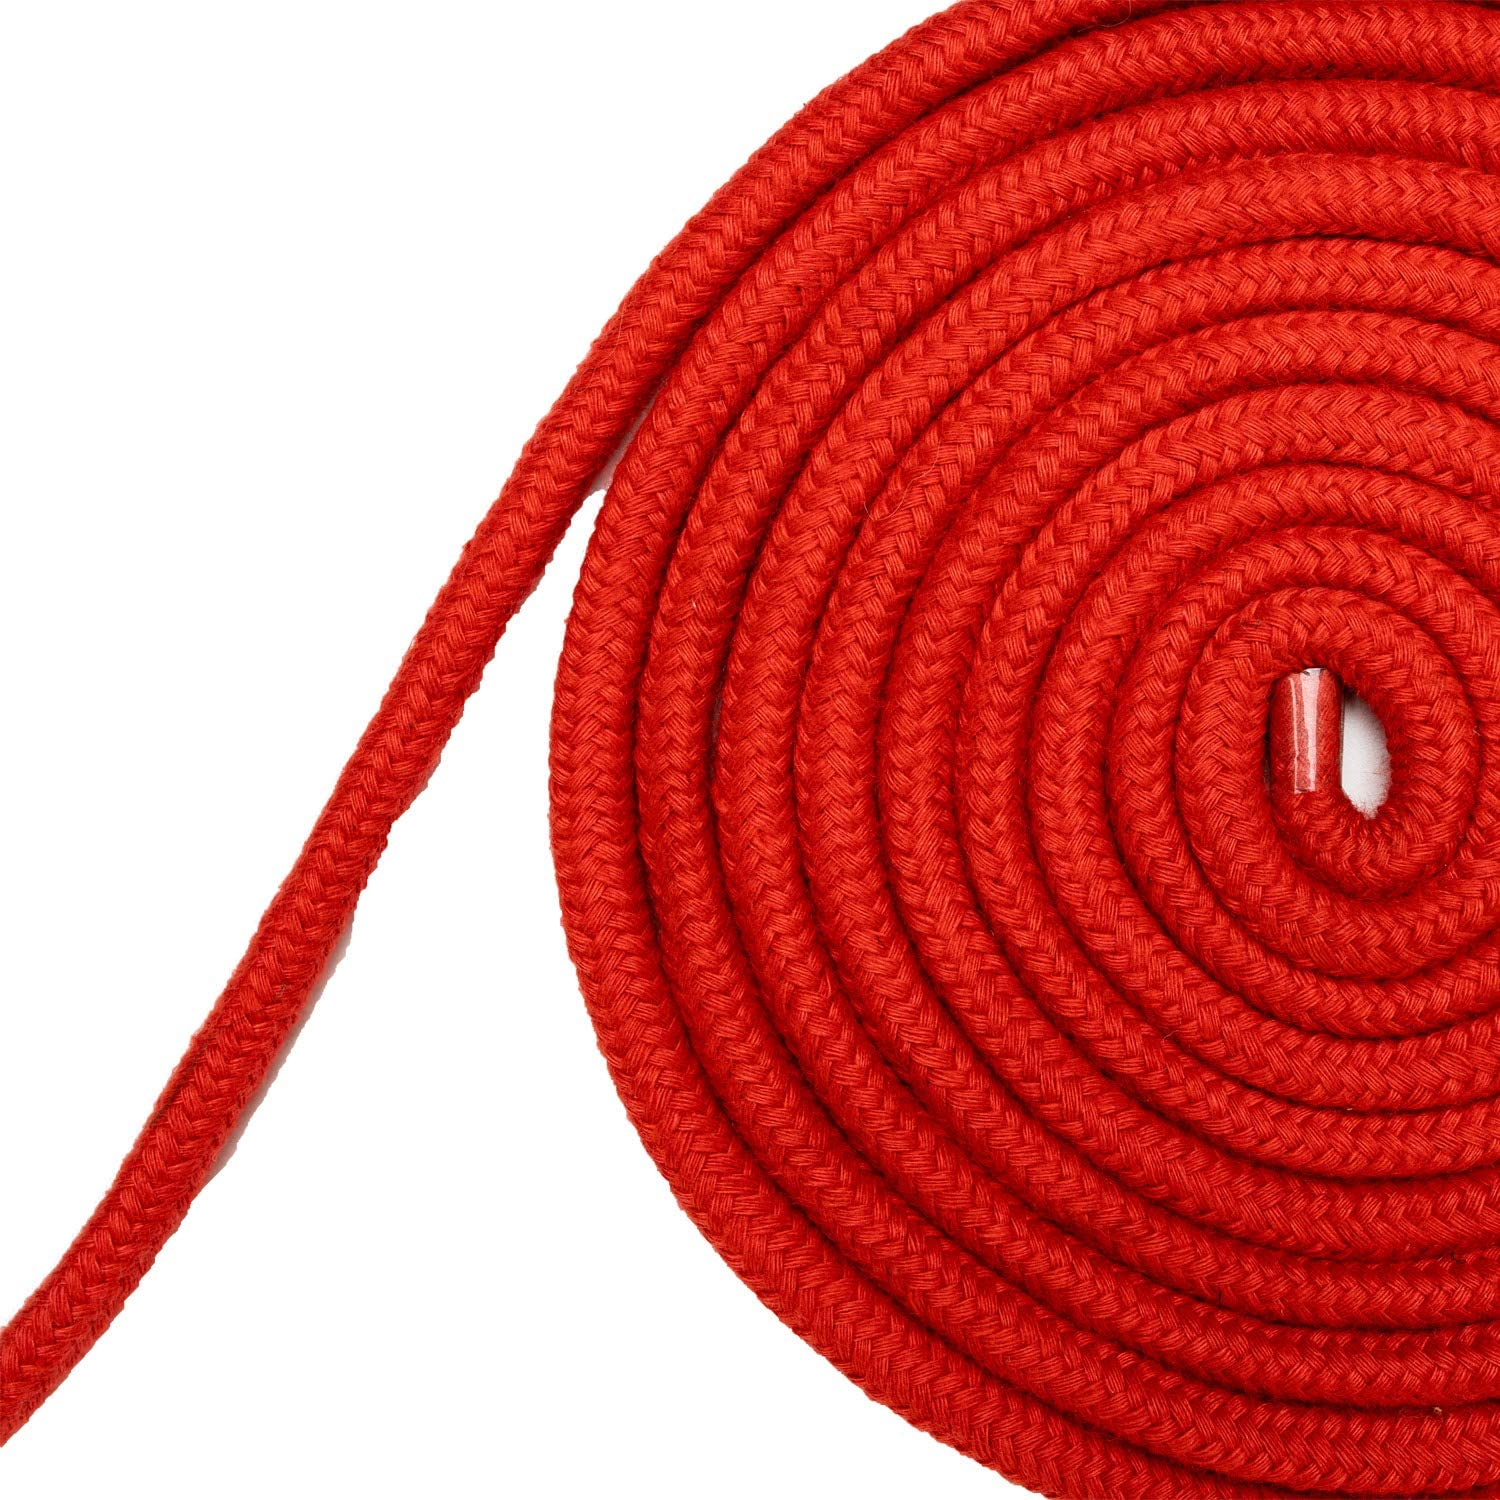 2 Pack of Red 1//3 inch Diameter Twisted Braided Multi-Function Natural Utility Durable Long Soft Cotton Rope 32 feet//10m 8mm